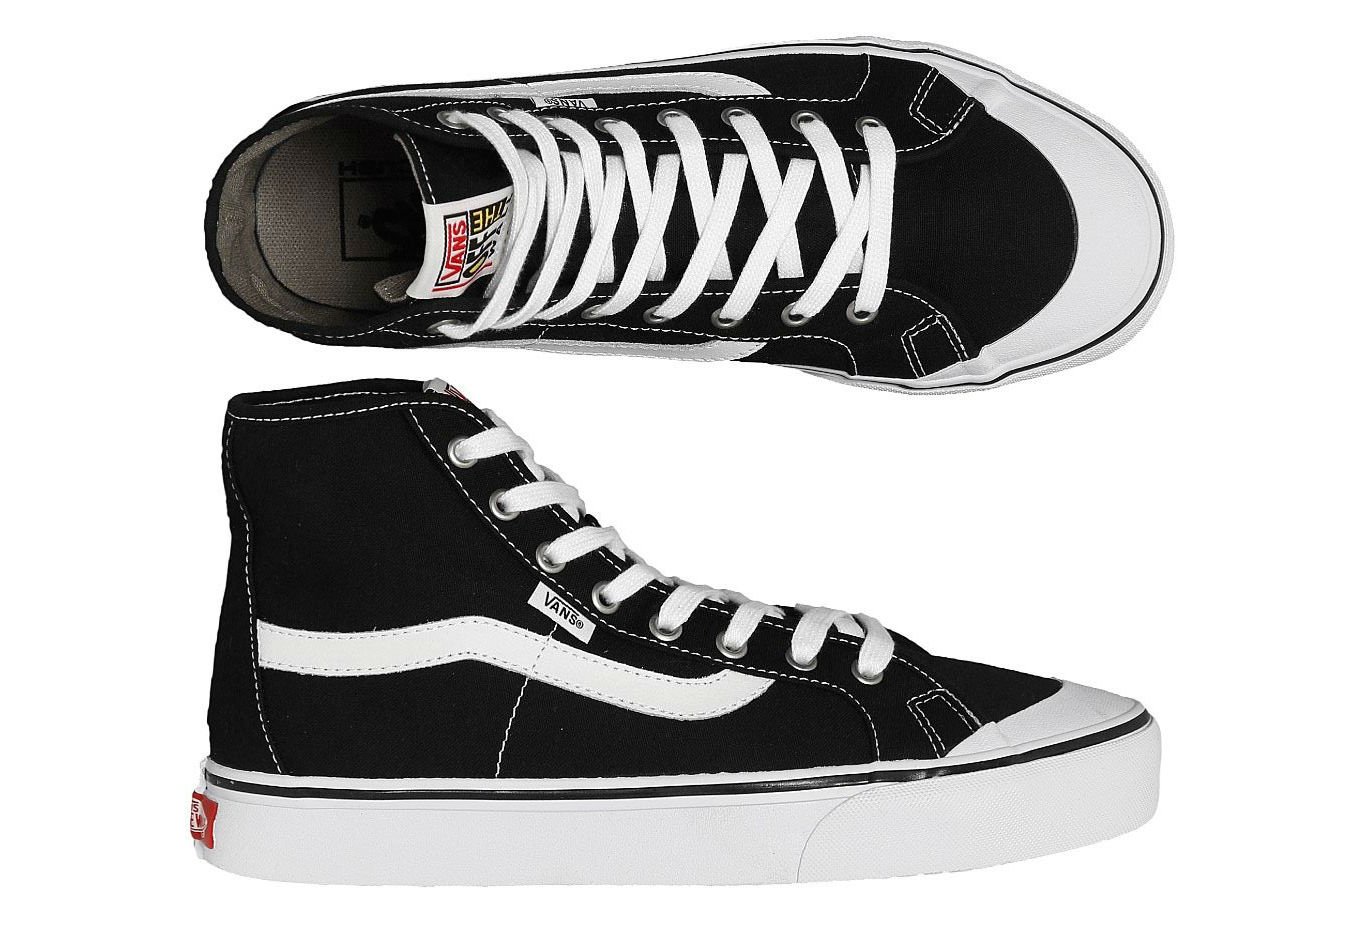 Vans Shoes Black Ball Hi SF Black White Wade Goodall Skateboard Sneakers New FREE POST